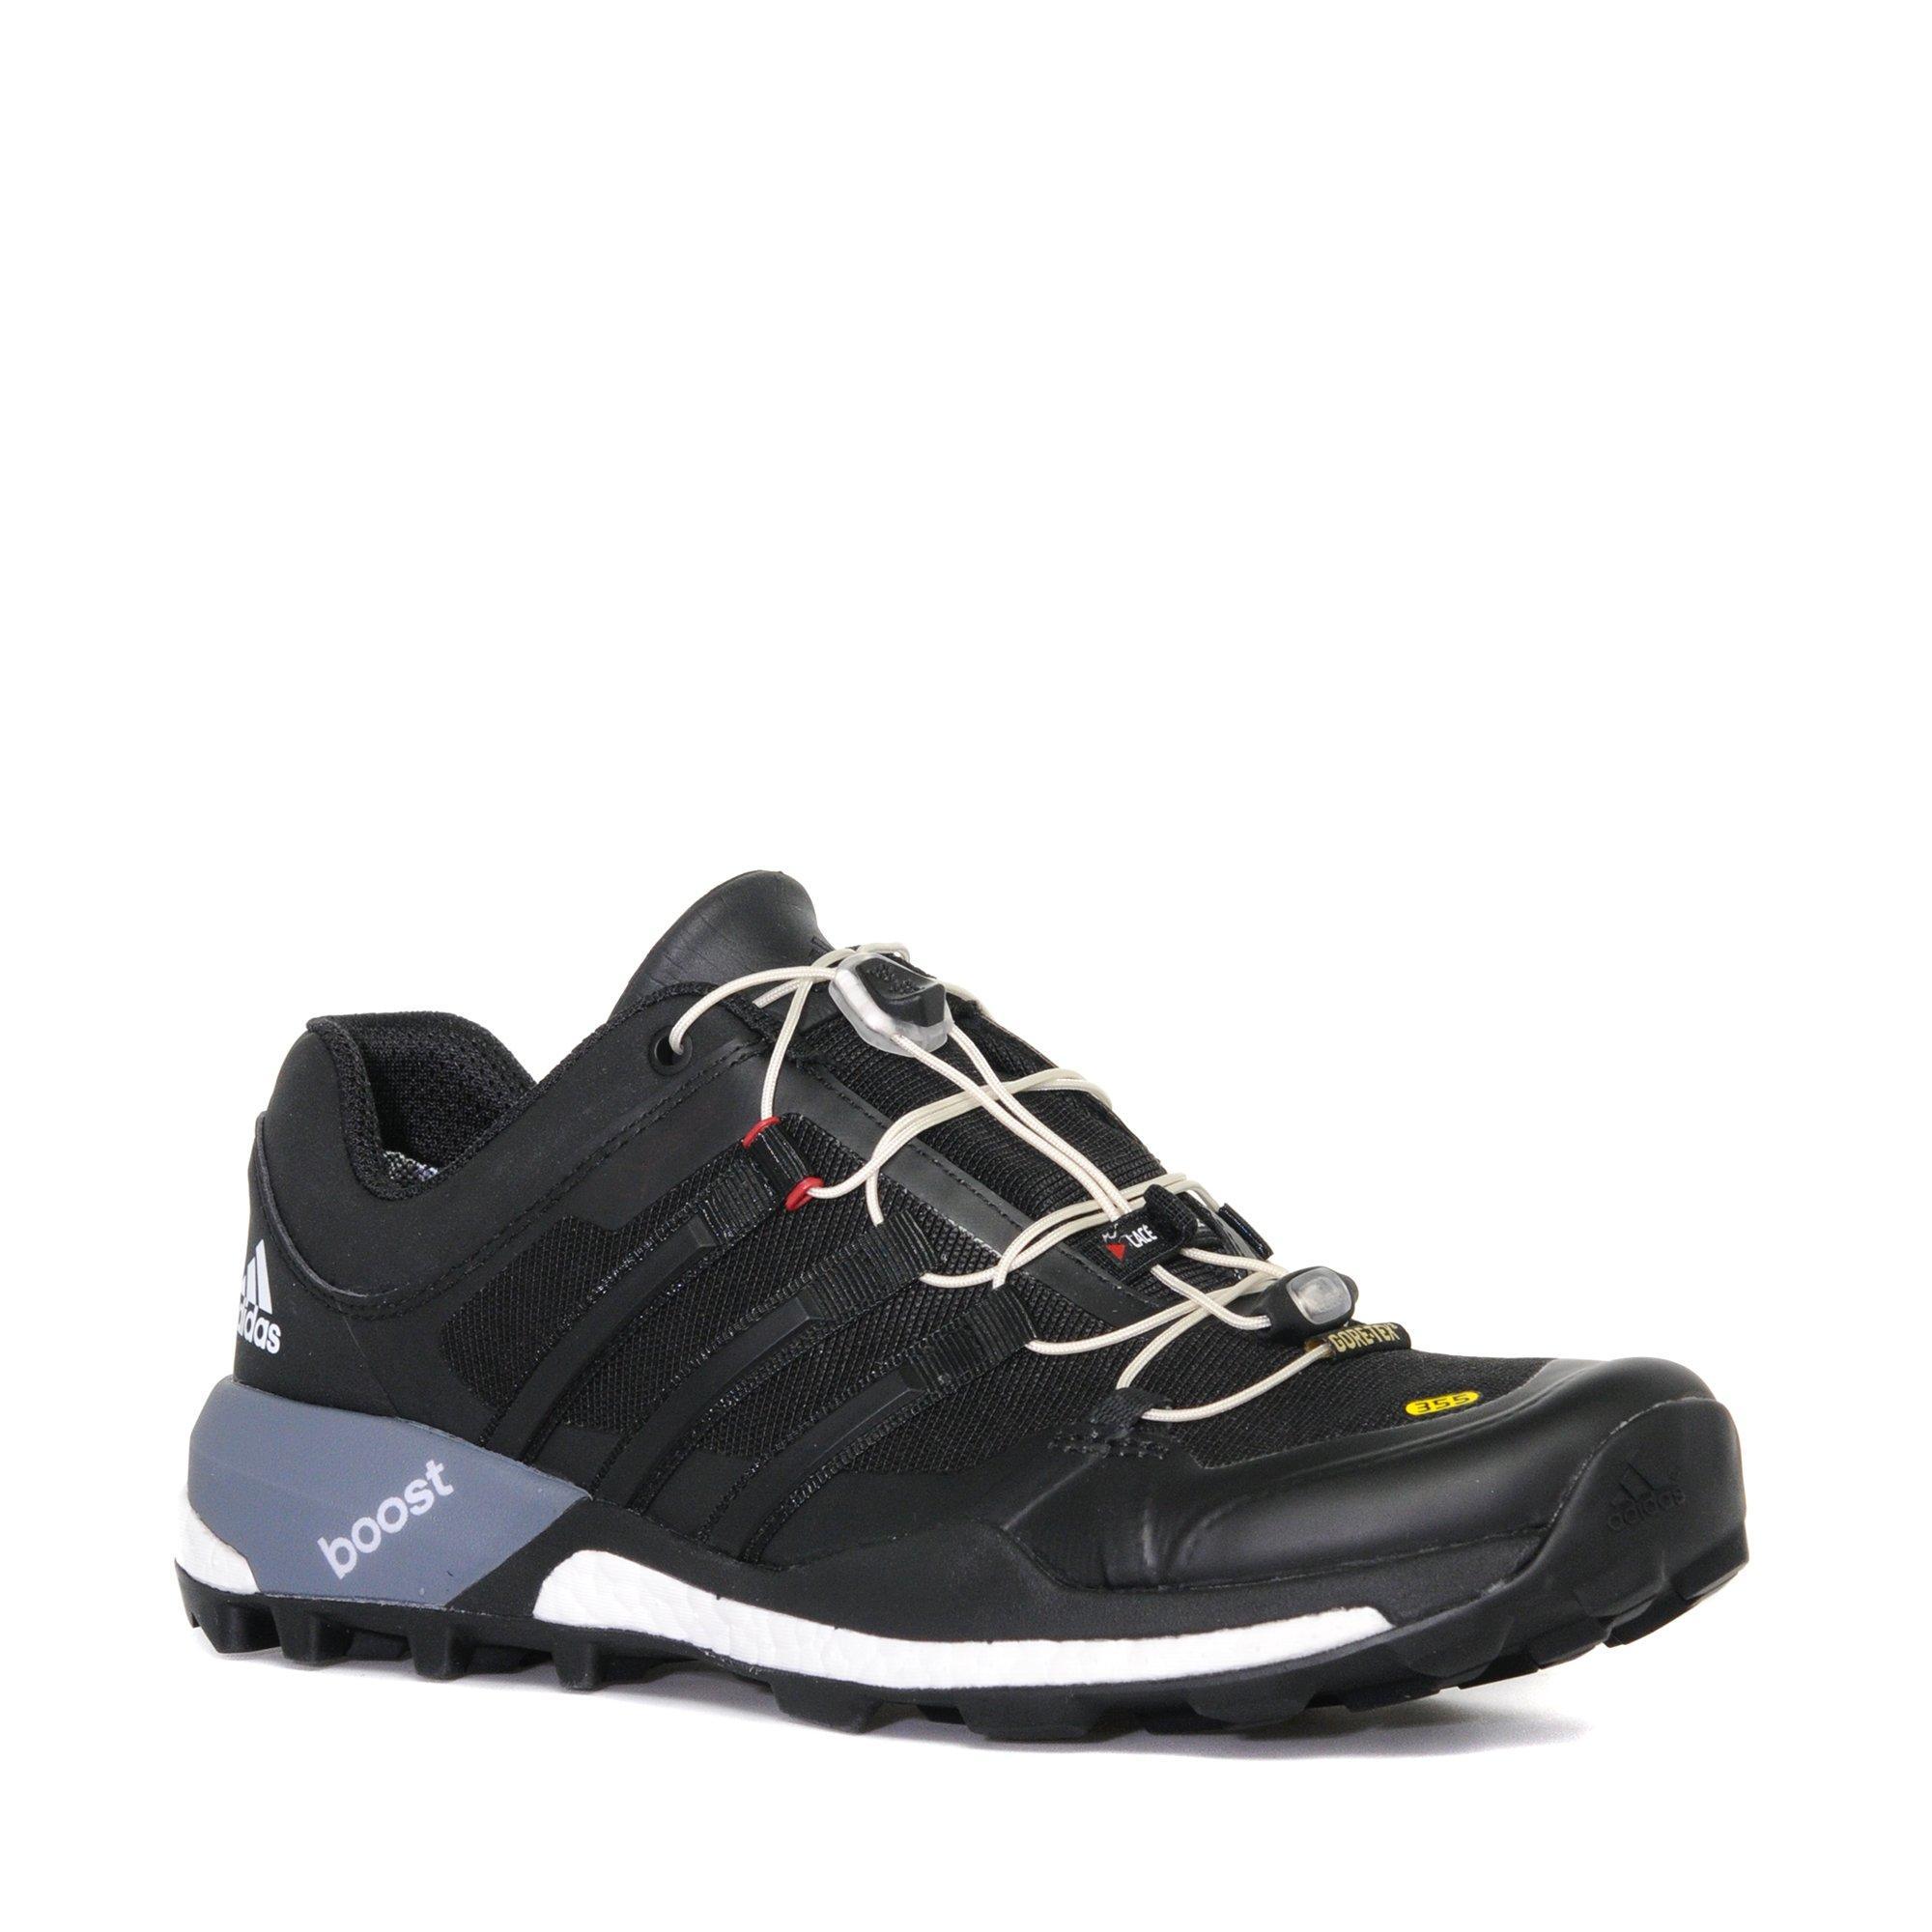 Adidas Mens Terrex Boost GORETEX Shoe Black